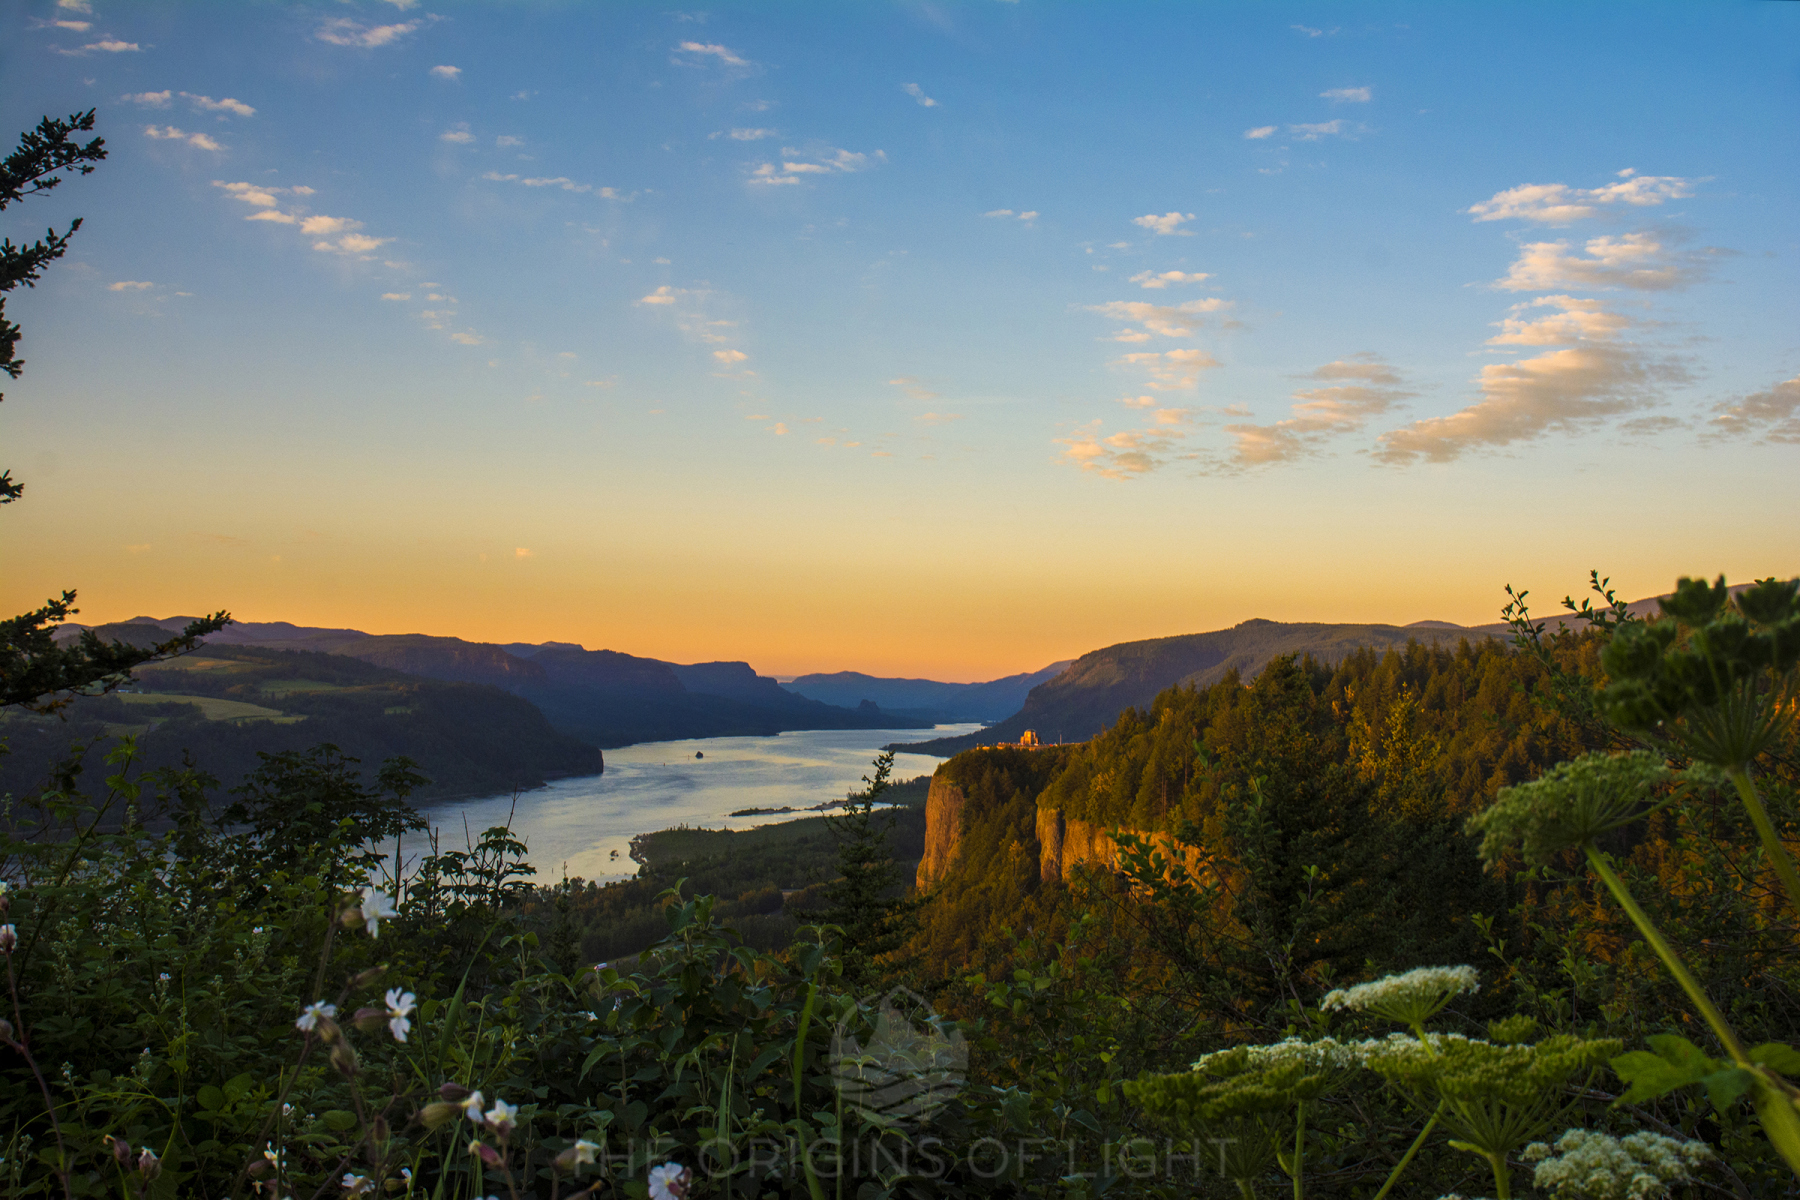 Columbia River Gorge from Womens Forum